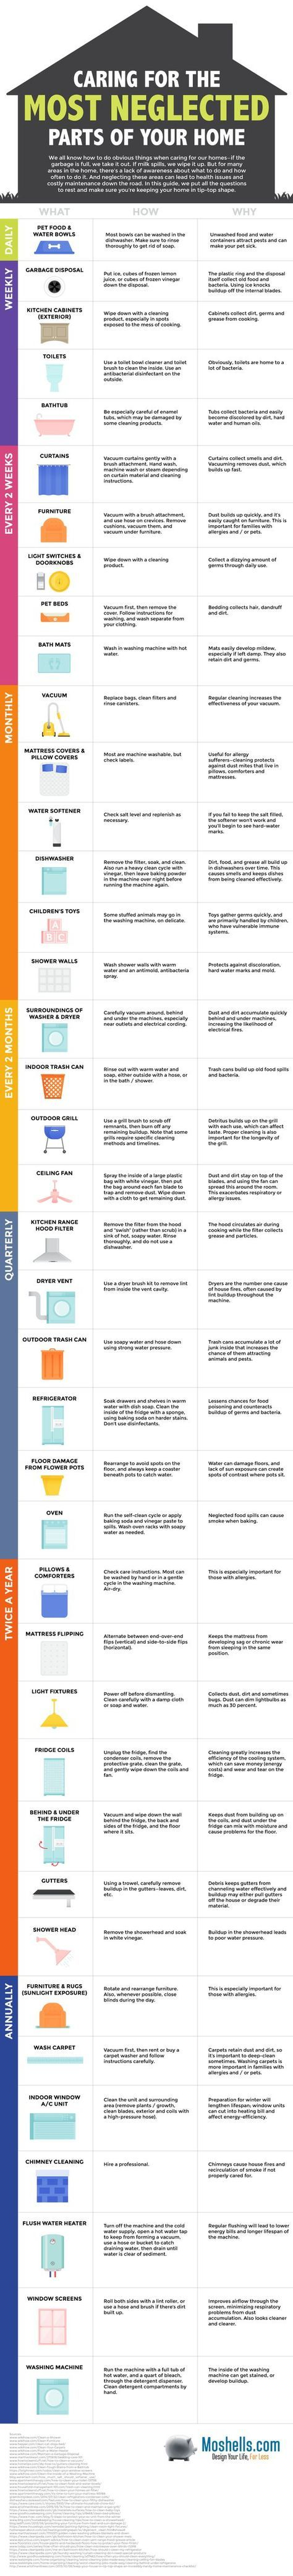 How Often You Should Clean The Mostmonly Neglected Parts Of Your Home